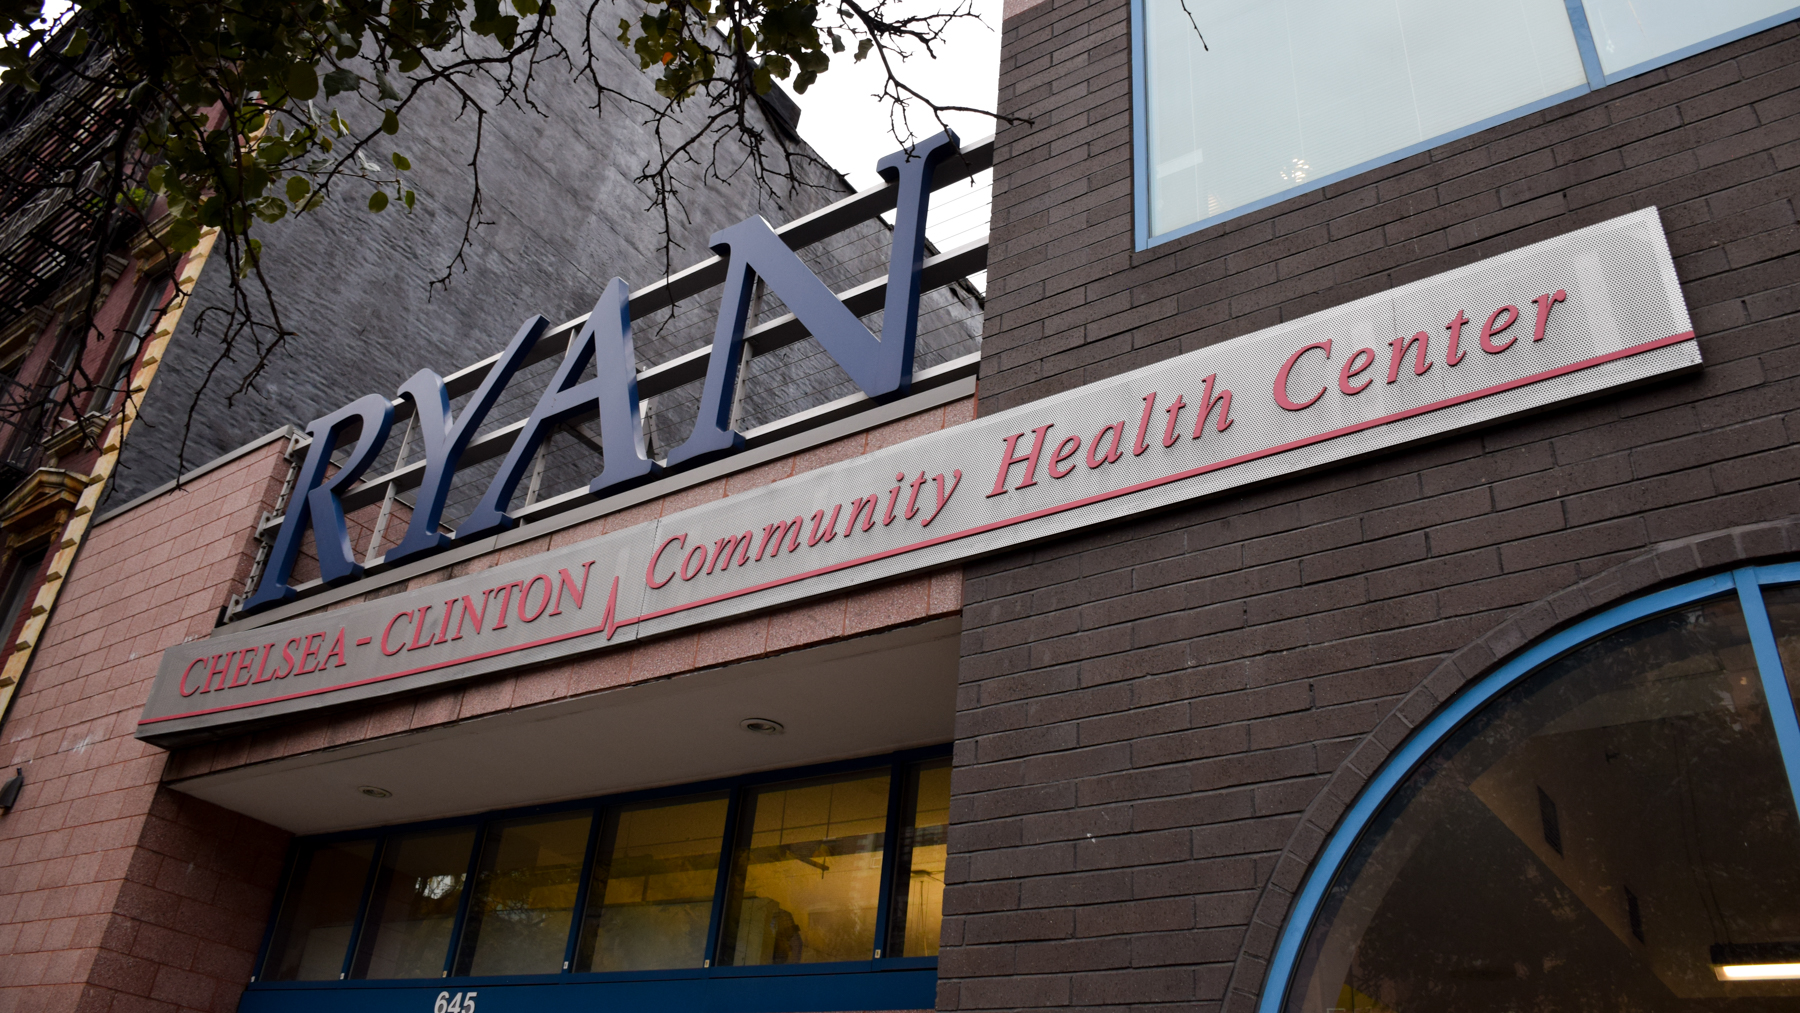 Gentrification and homelessness are simultaneously impacting the neighborhood around Ryan Health's Chelsea-Clinton branch in Hell's Kitchen, New York City. More than 80 percent of health center's patients earn an income below the federal poverty line. (Noah Smith/DIrectRelief)